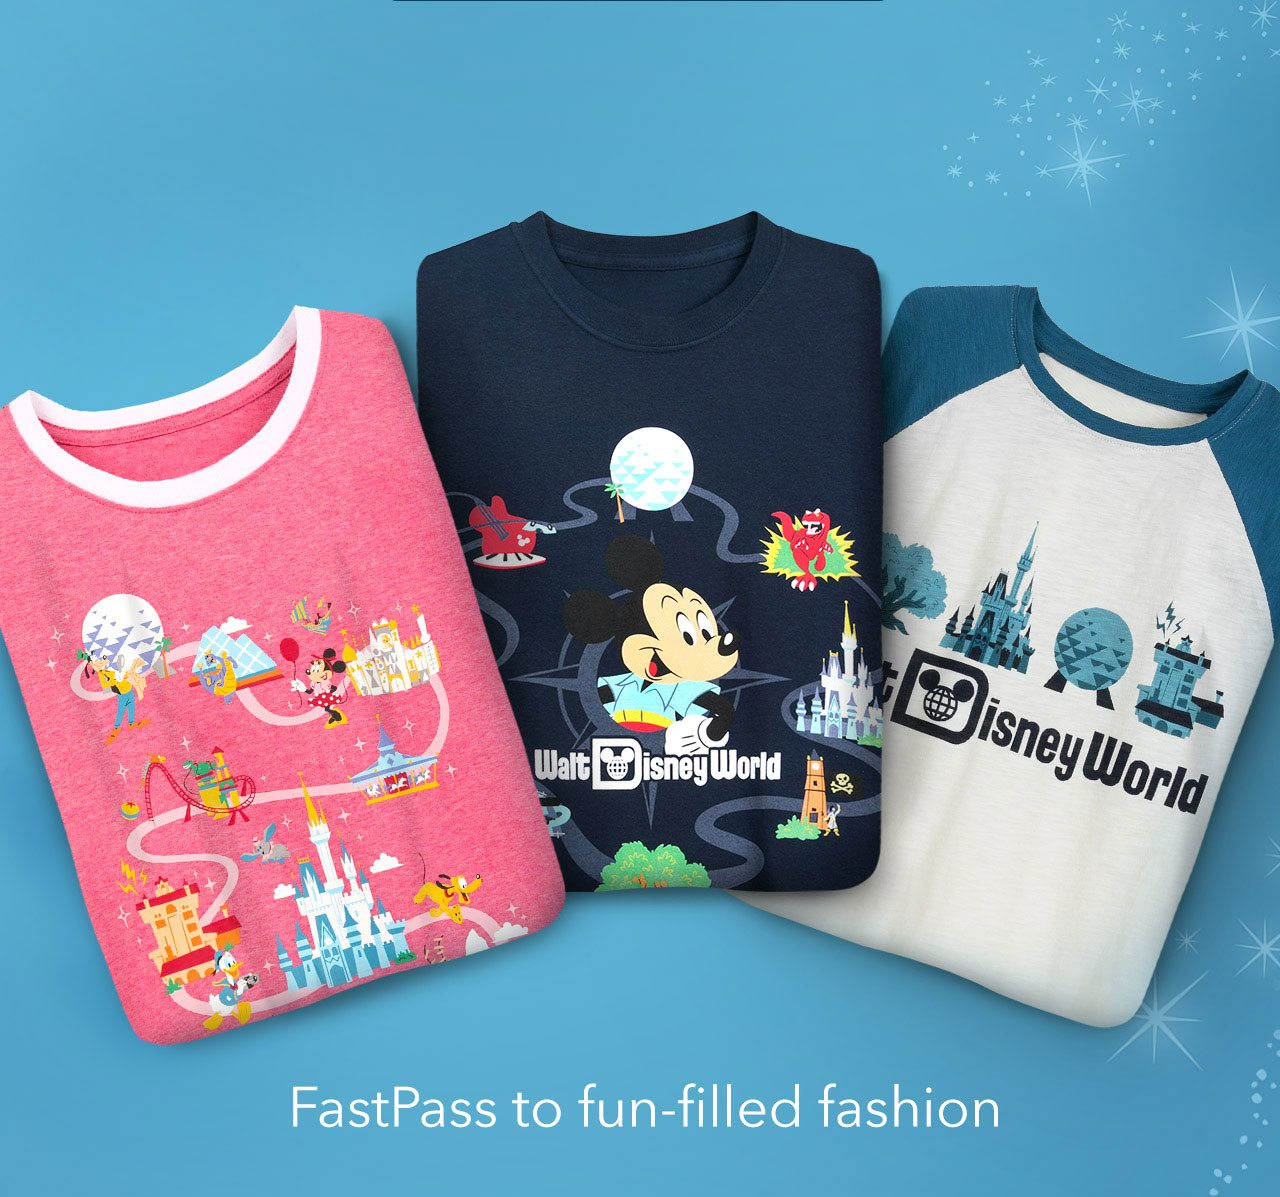 FastPass to fun-filled fashion